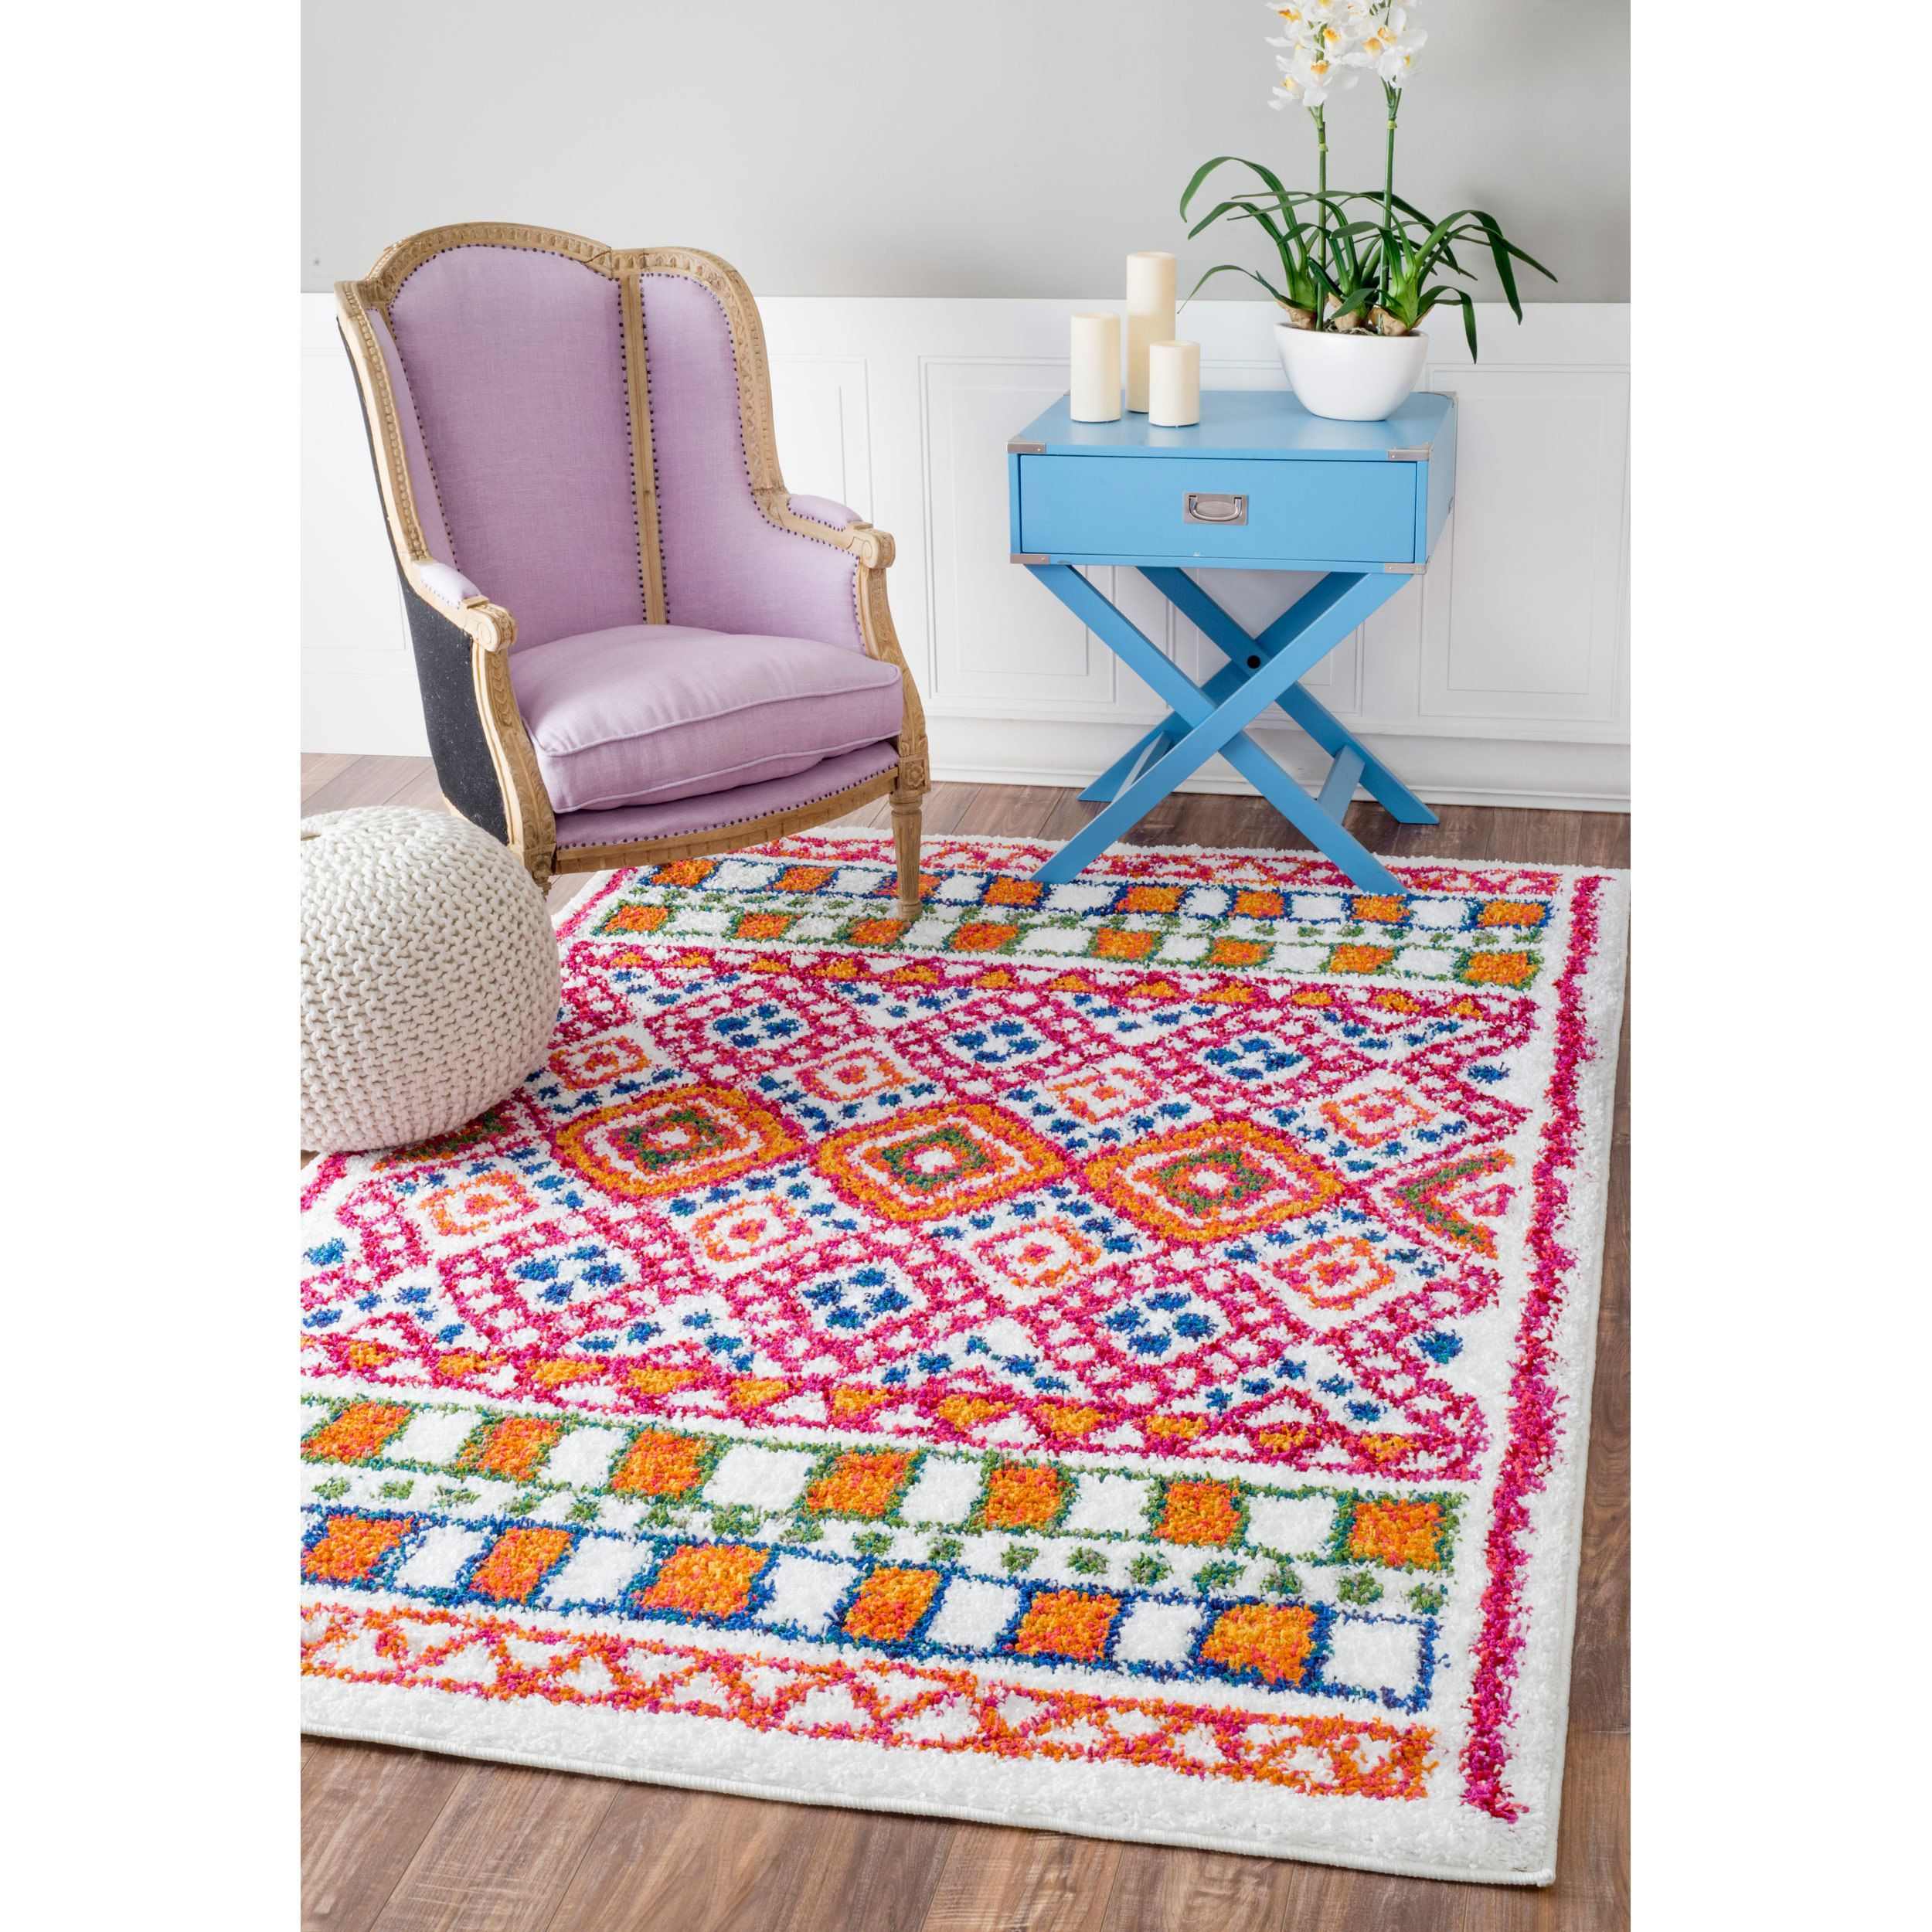 nuLOOM Soft and Plush Diamond Trellis Multi Kids Shag Rug (5'3 x 7'8) - Overstock Shopping - Great Deals on Nuloom 5x8 - 6x9 Rugs